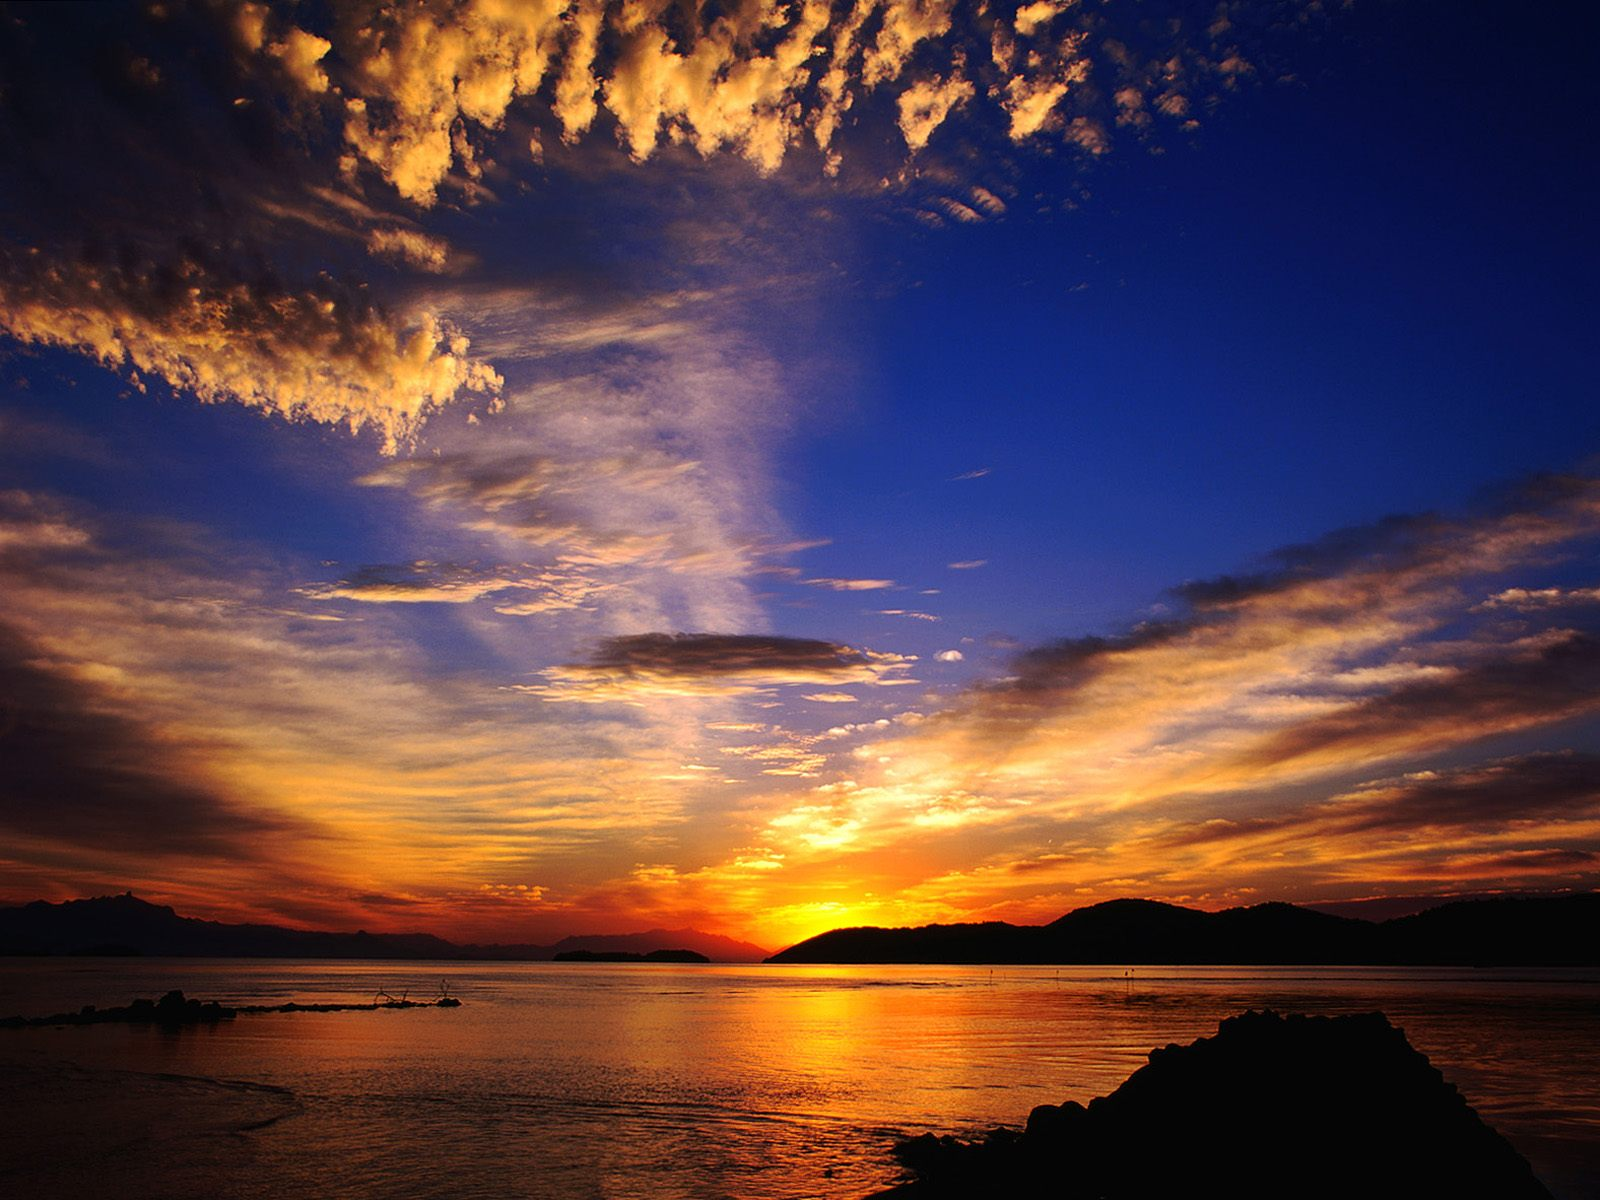 Amazing sunset hd desktop wallpaper 1600x1200 hd wallpaper - Desktop wallpaper 1600x1200 ...